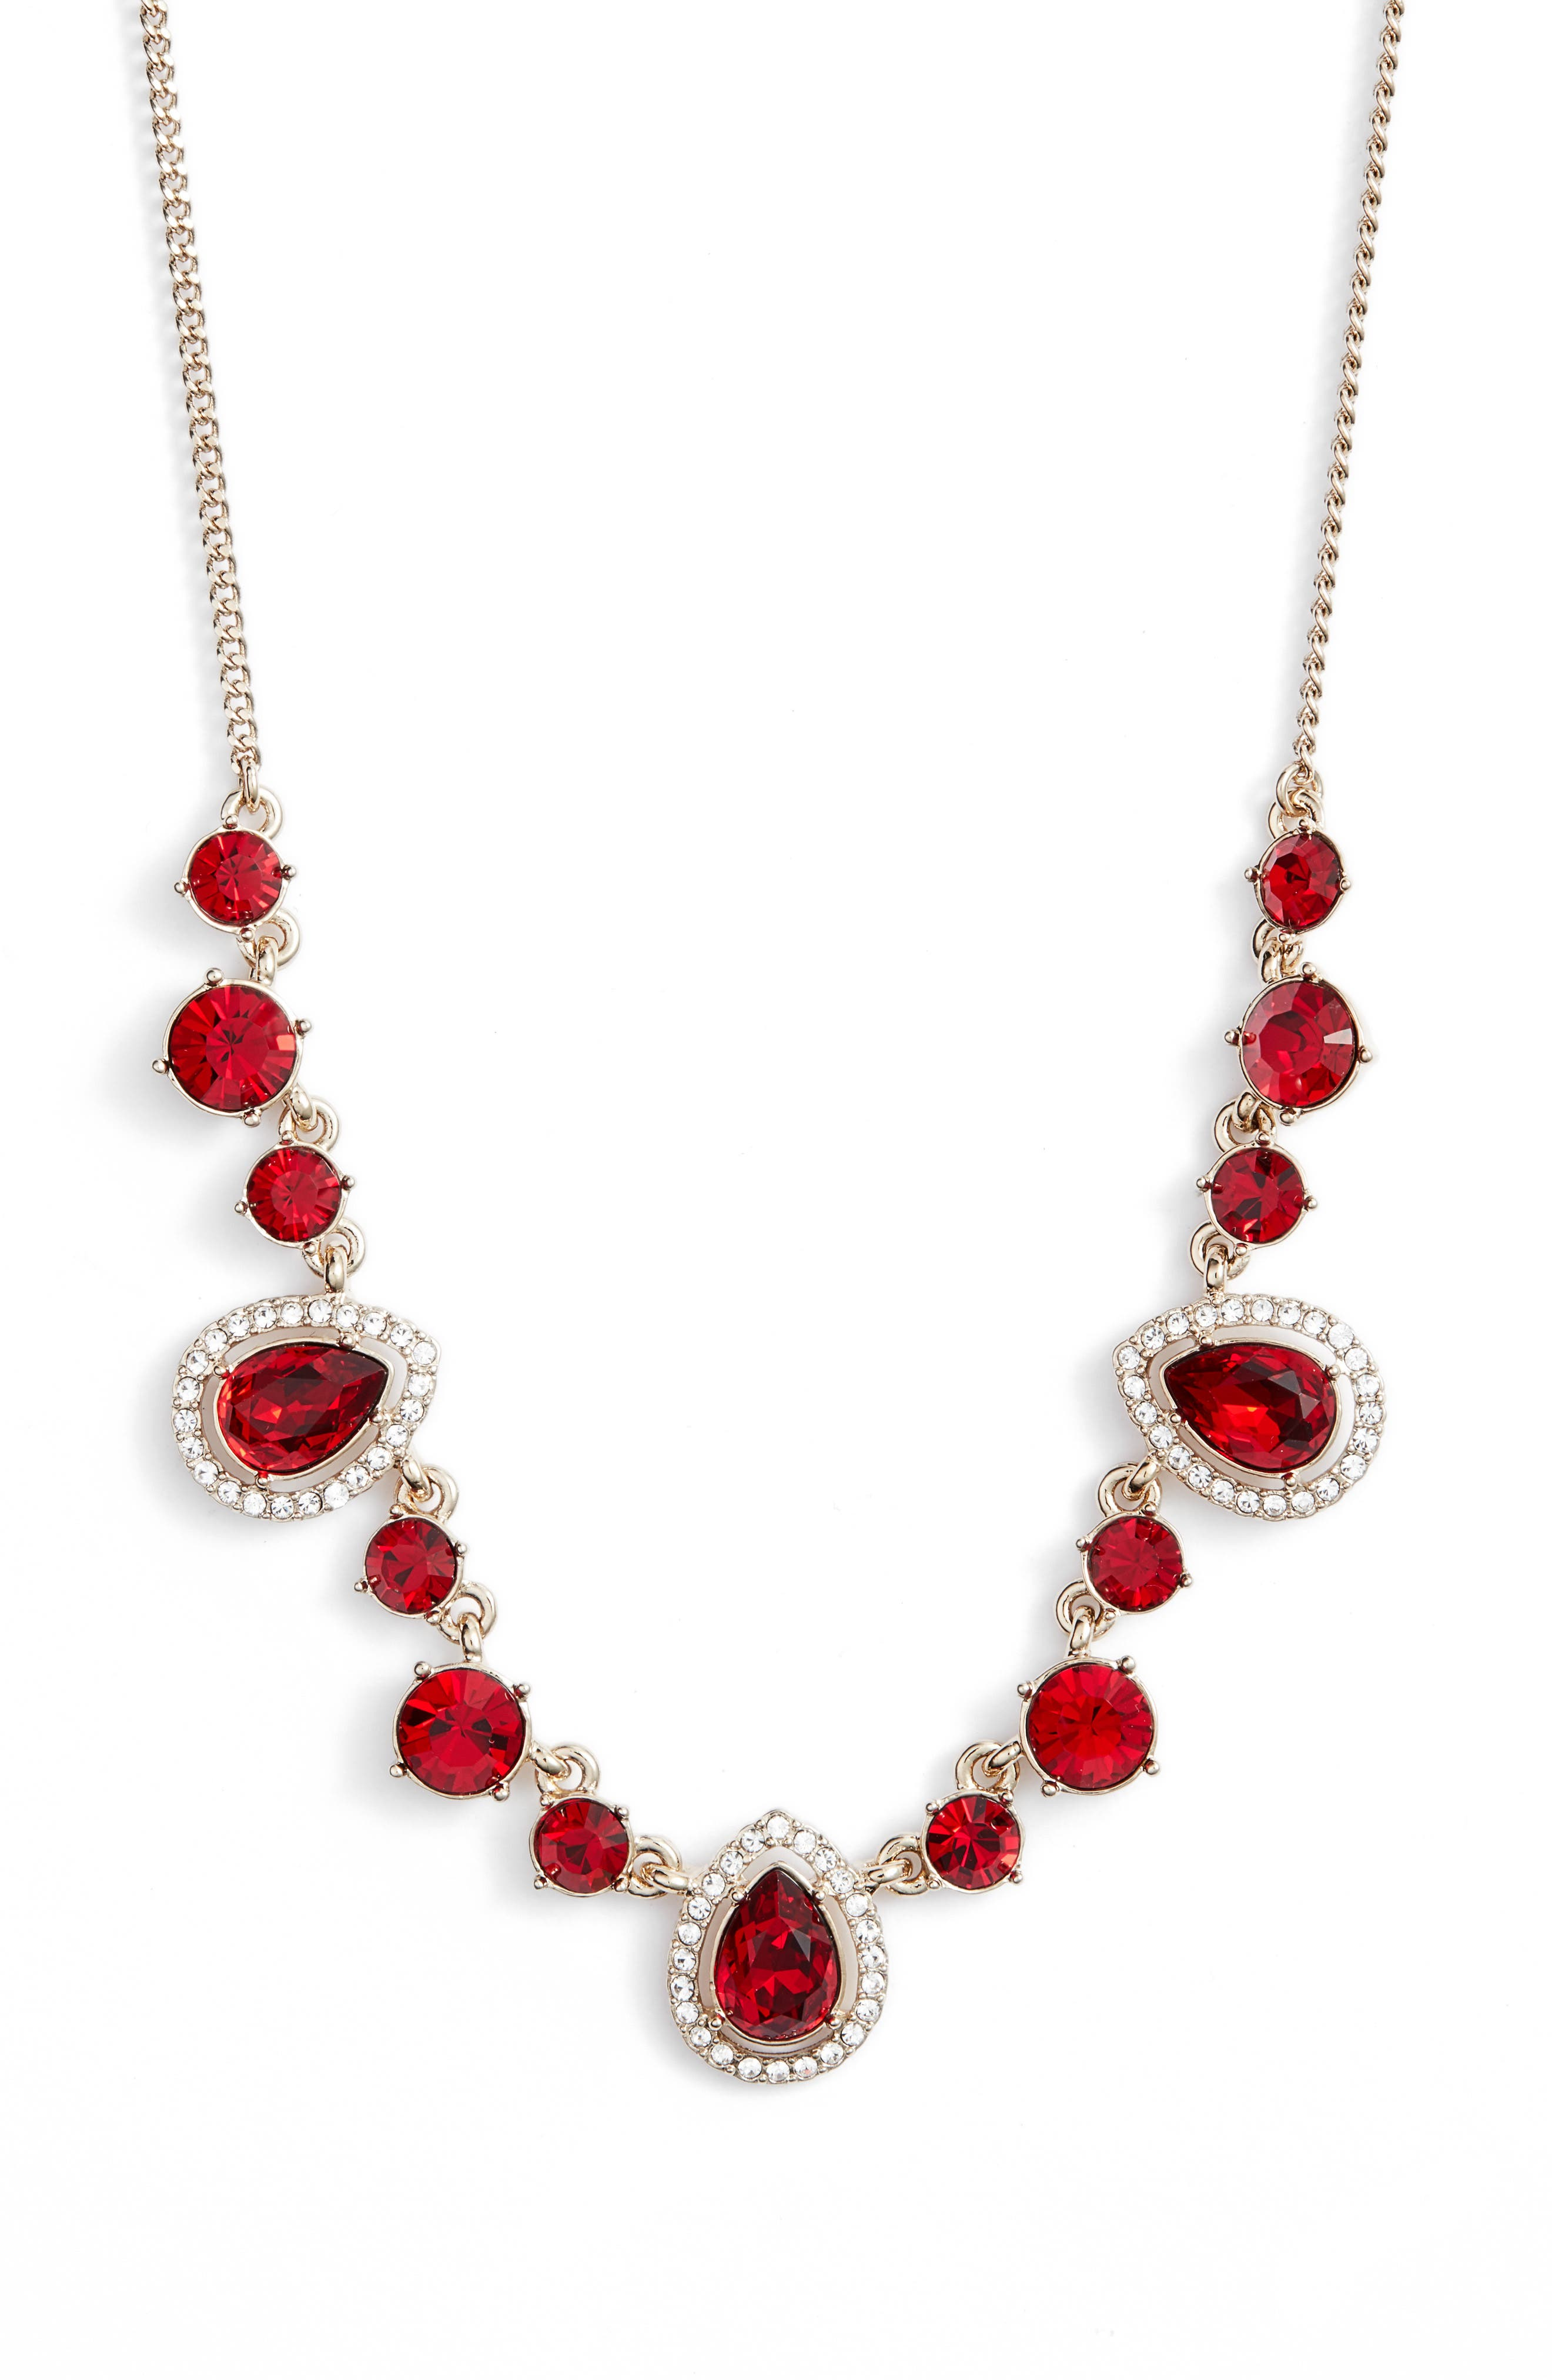 Teardrop Crystal Frontal Necklace,                         Main,                         color, RED/ GOLD